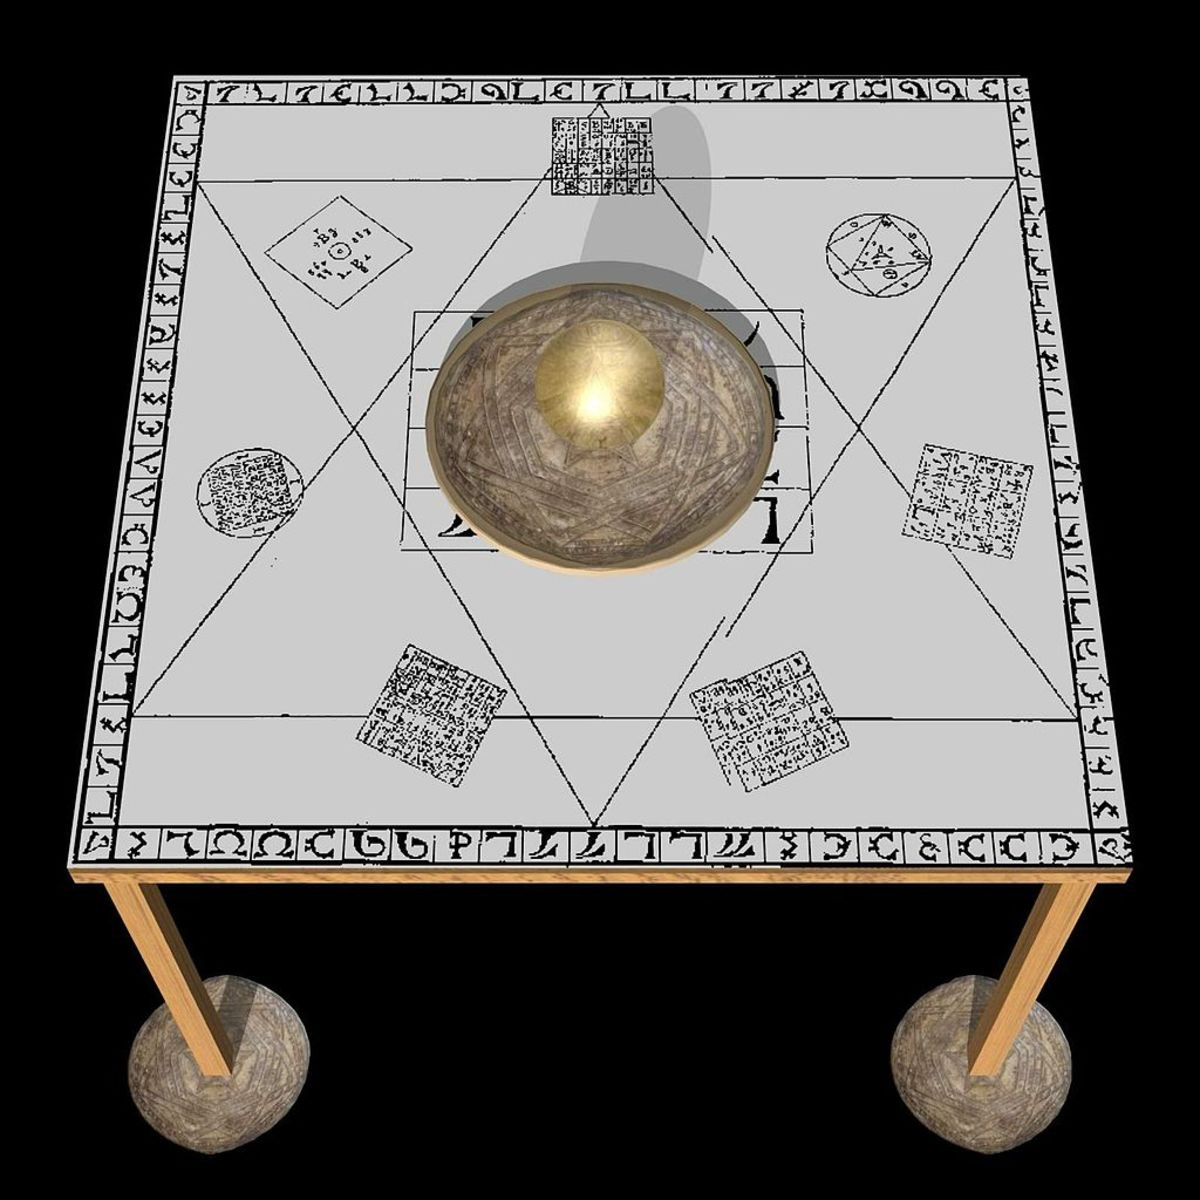 THE HOLY TABLE OF THE OCCULT